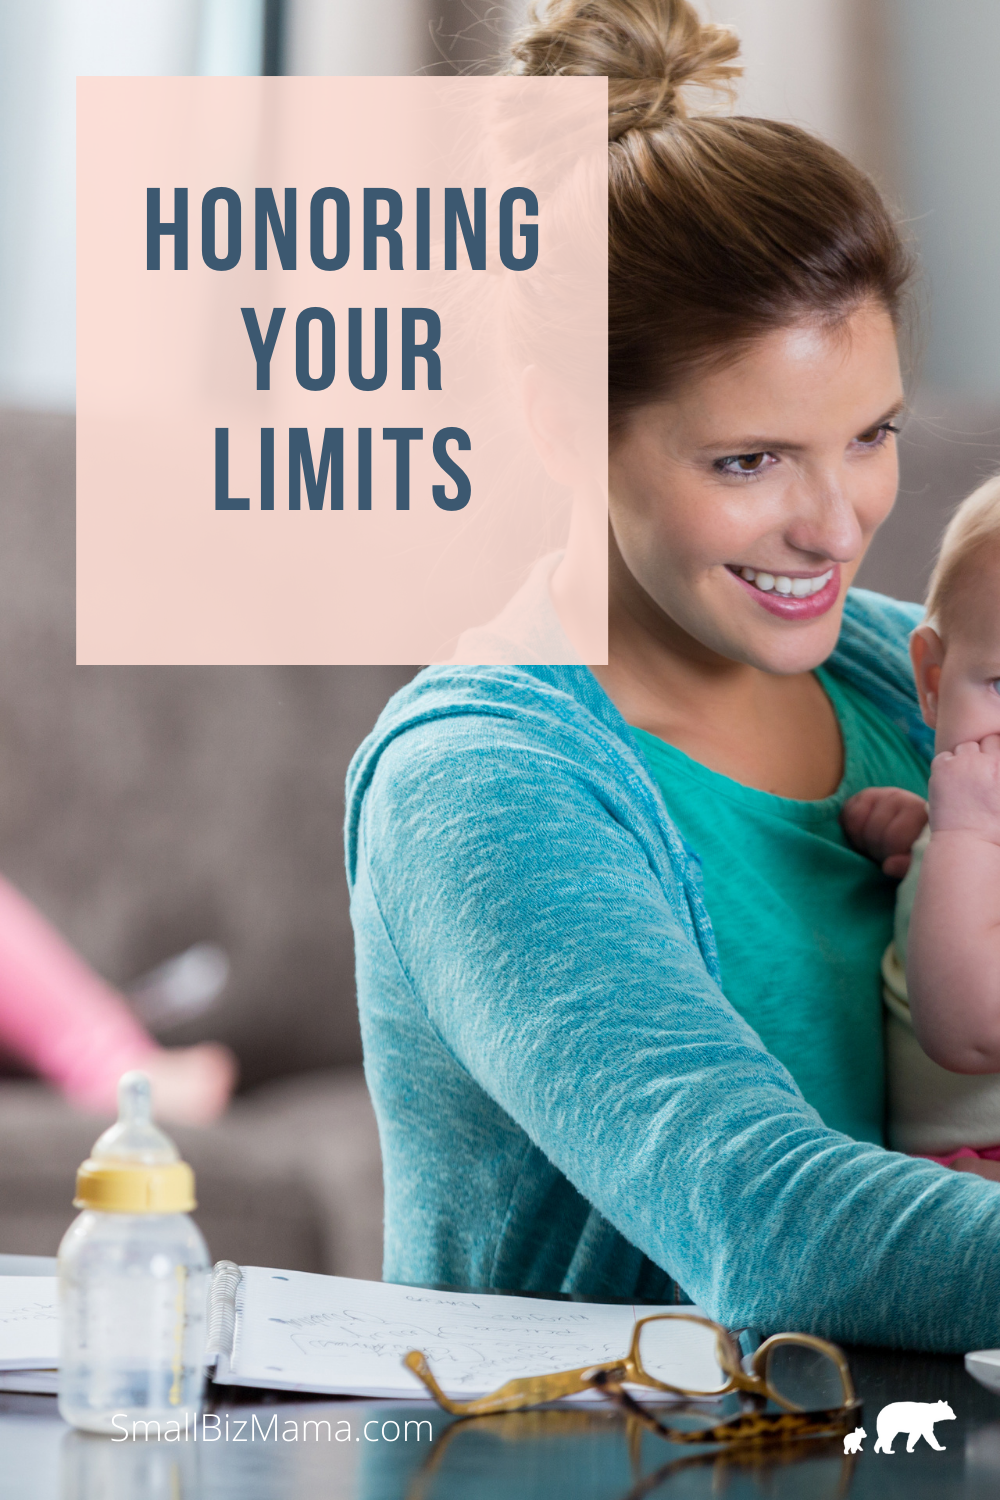 Honoring your limits